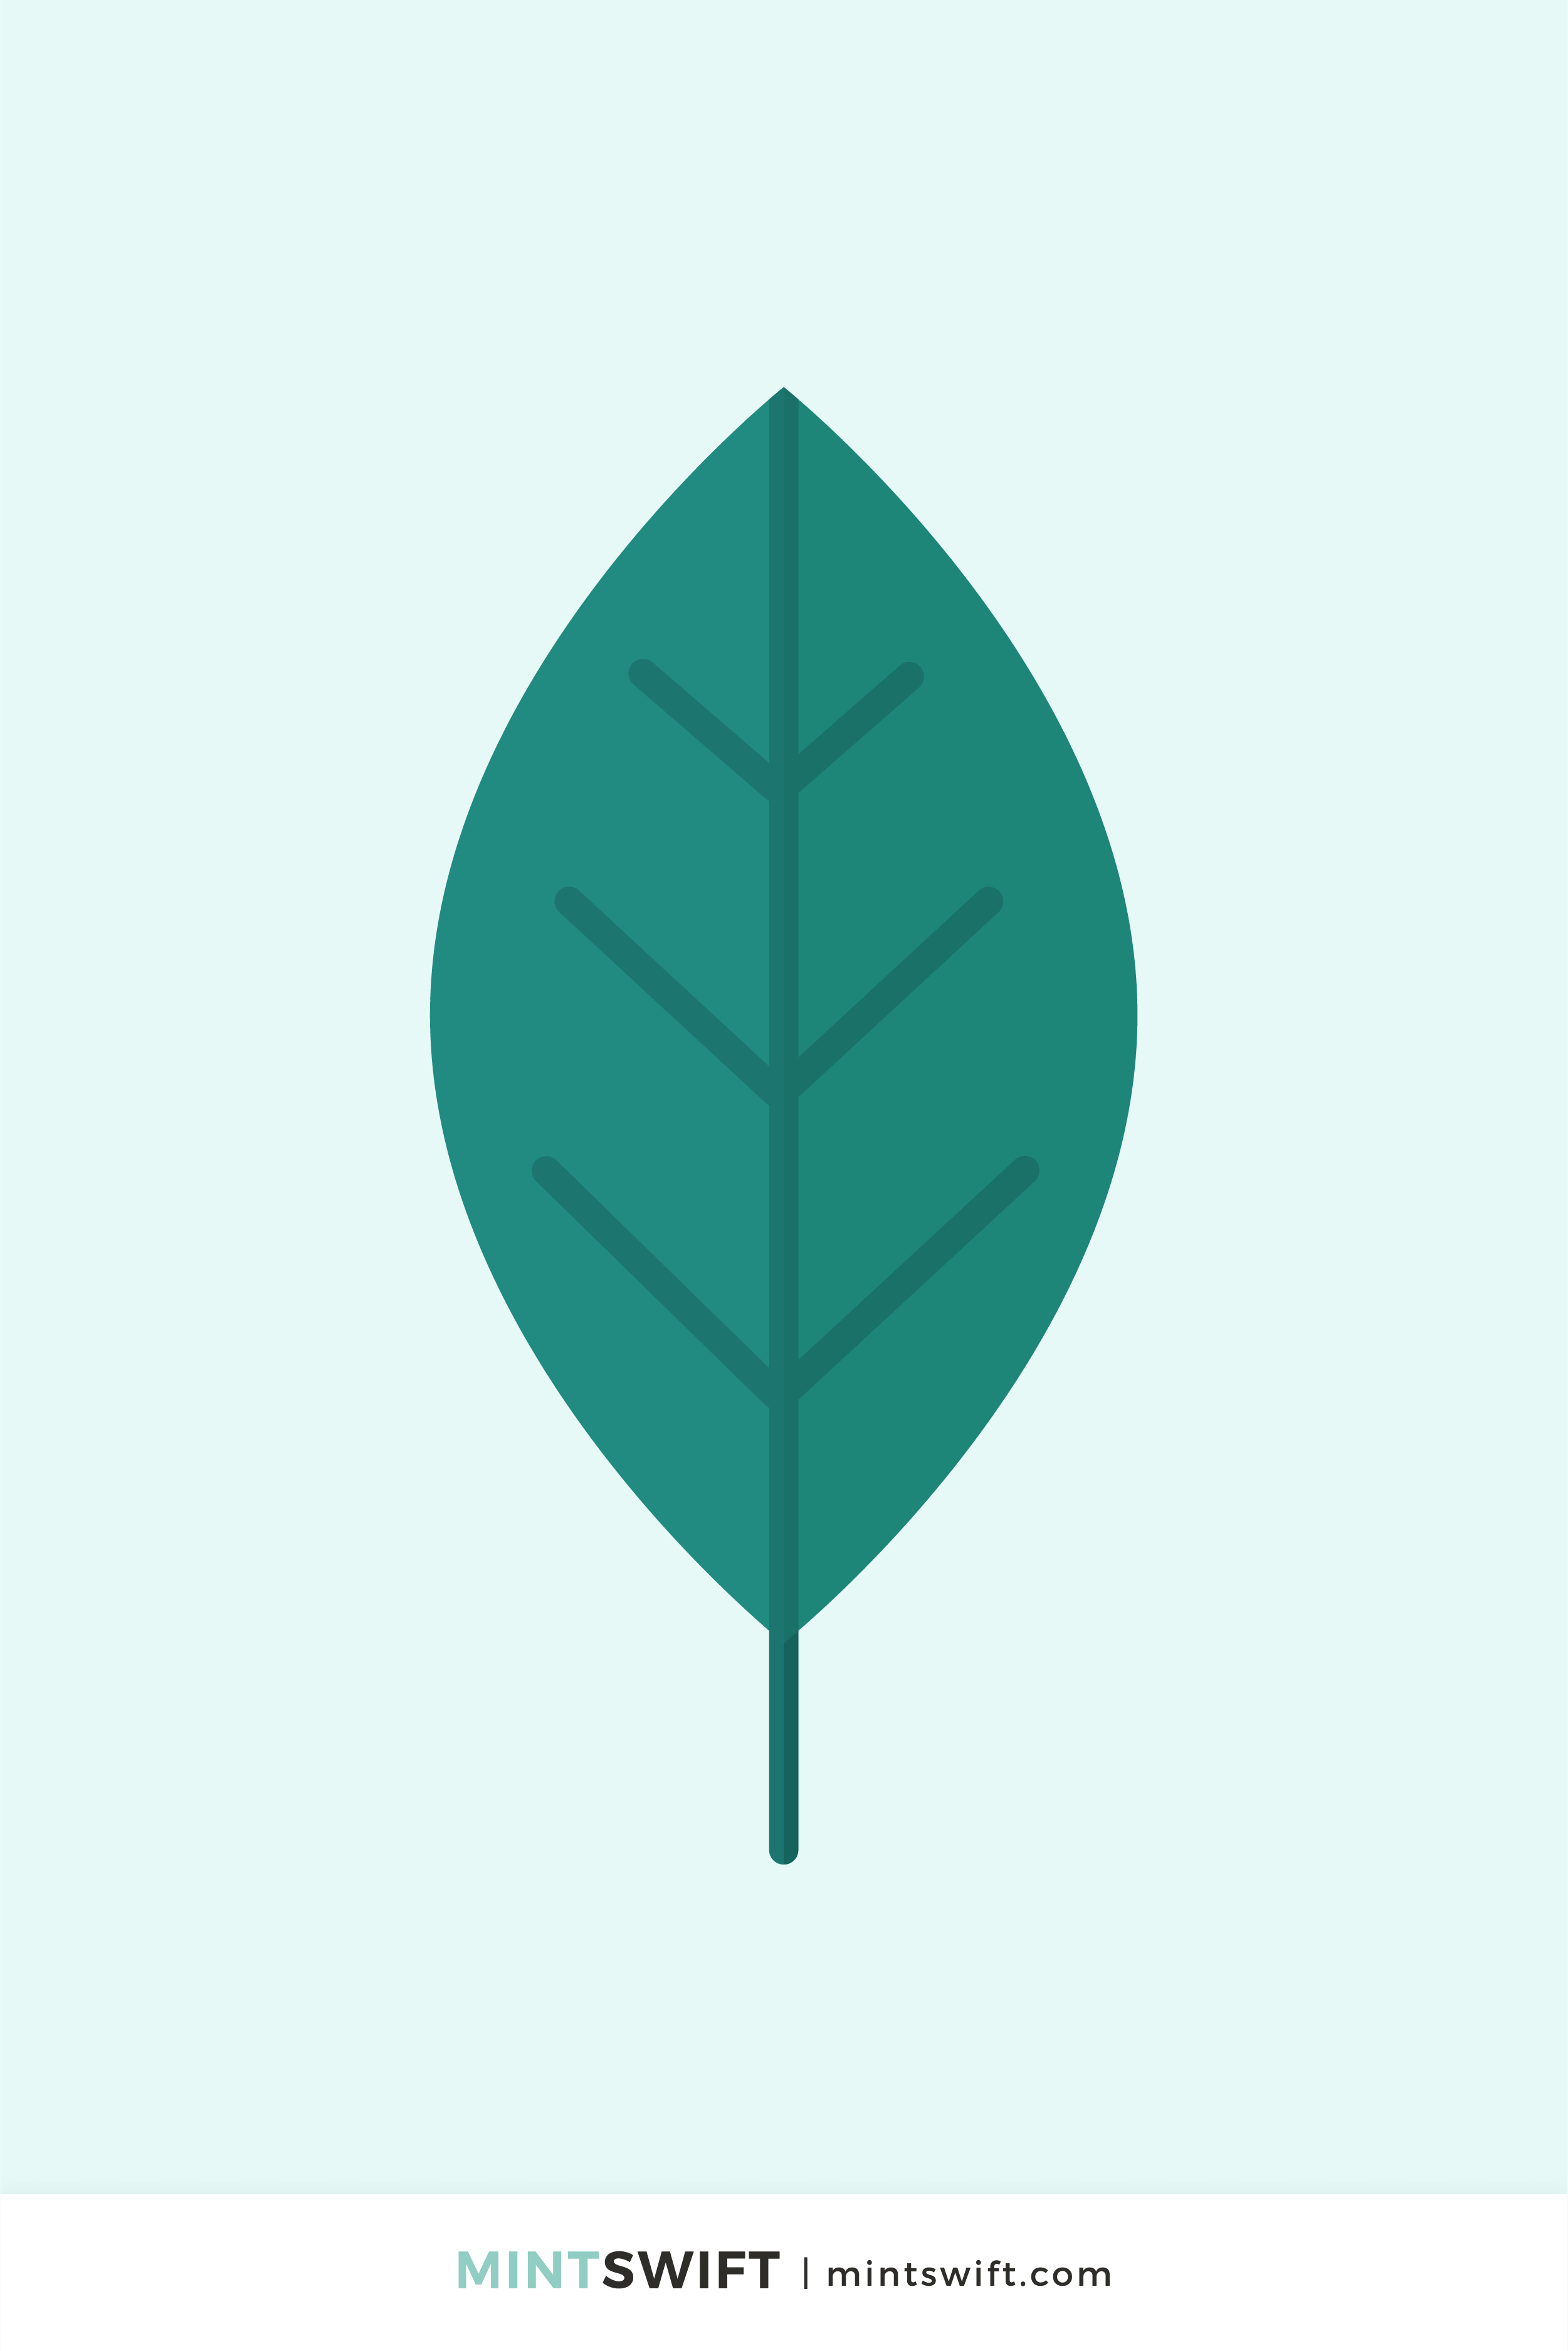 Dark green simple leaf vector illustration in flat design style on a light mint background